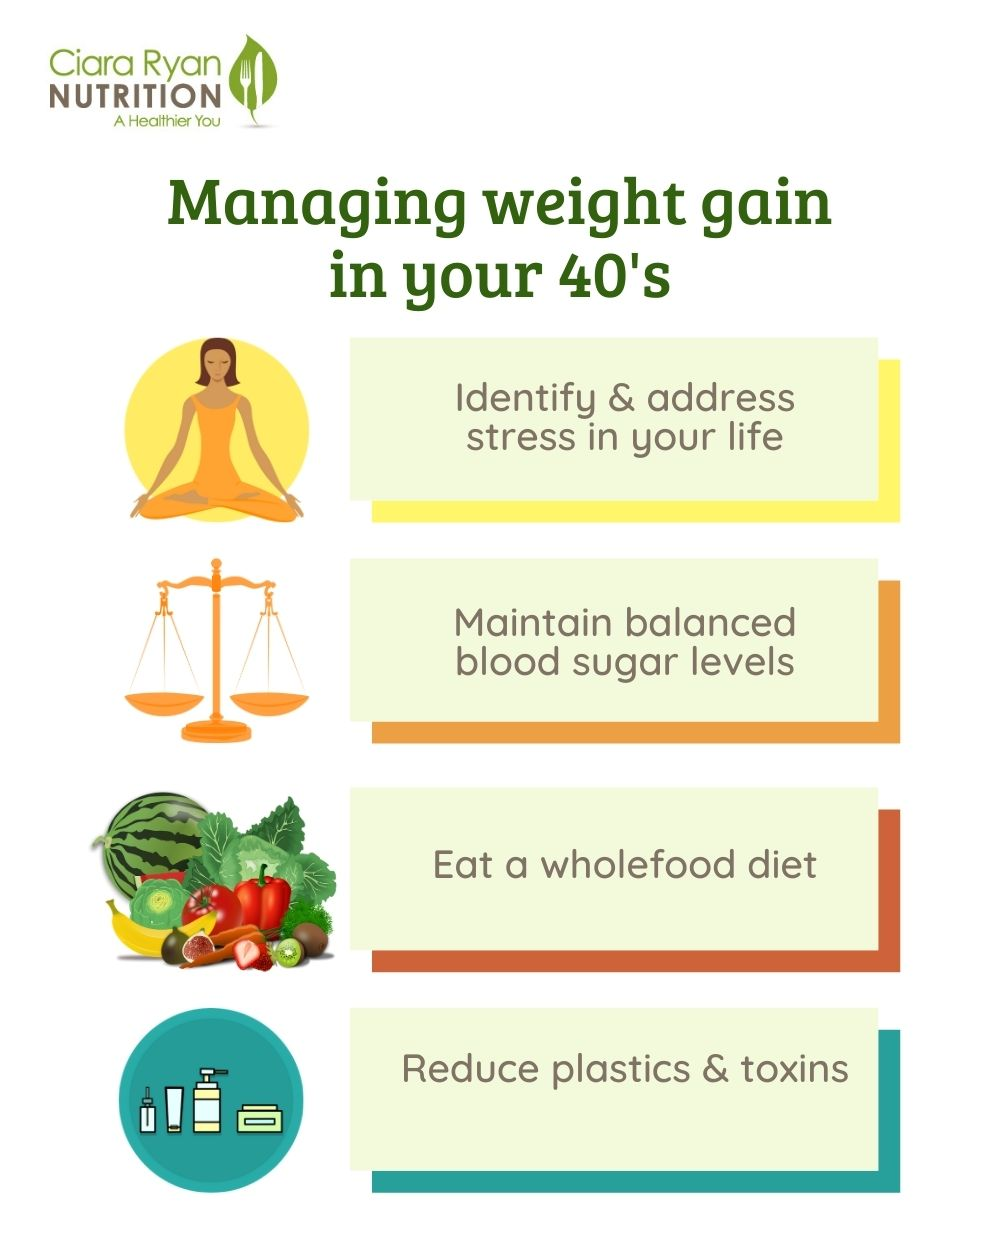 CiaraRyan Nutrition Tips for managing weight gain for those in their 40's. Address stress, maintin balanced bloodeat a wholefood diet sugar levels, reduce plastics and toxins